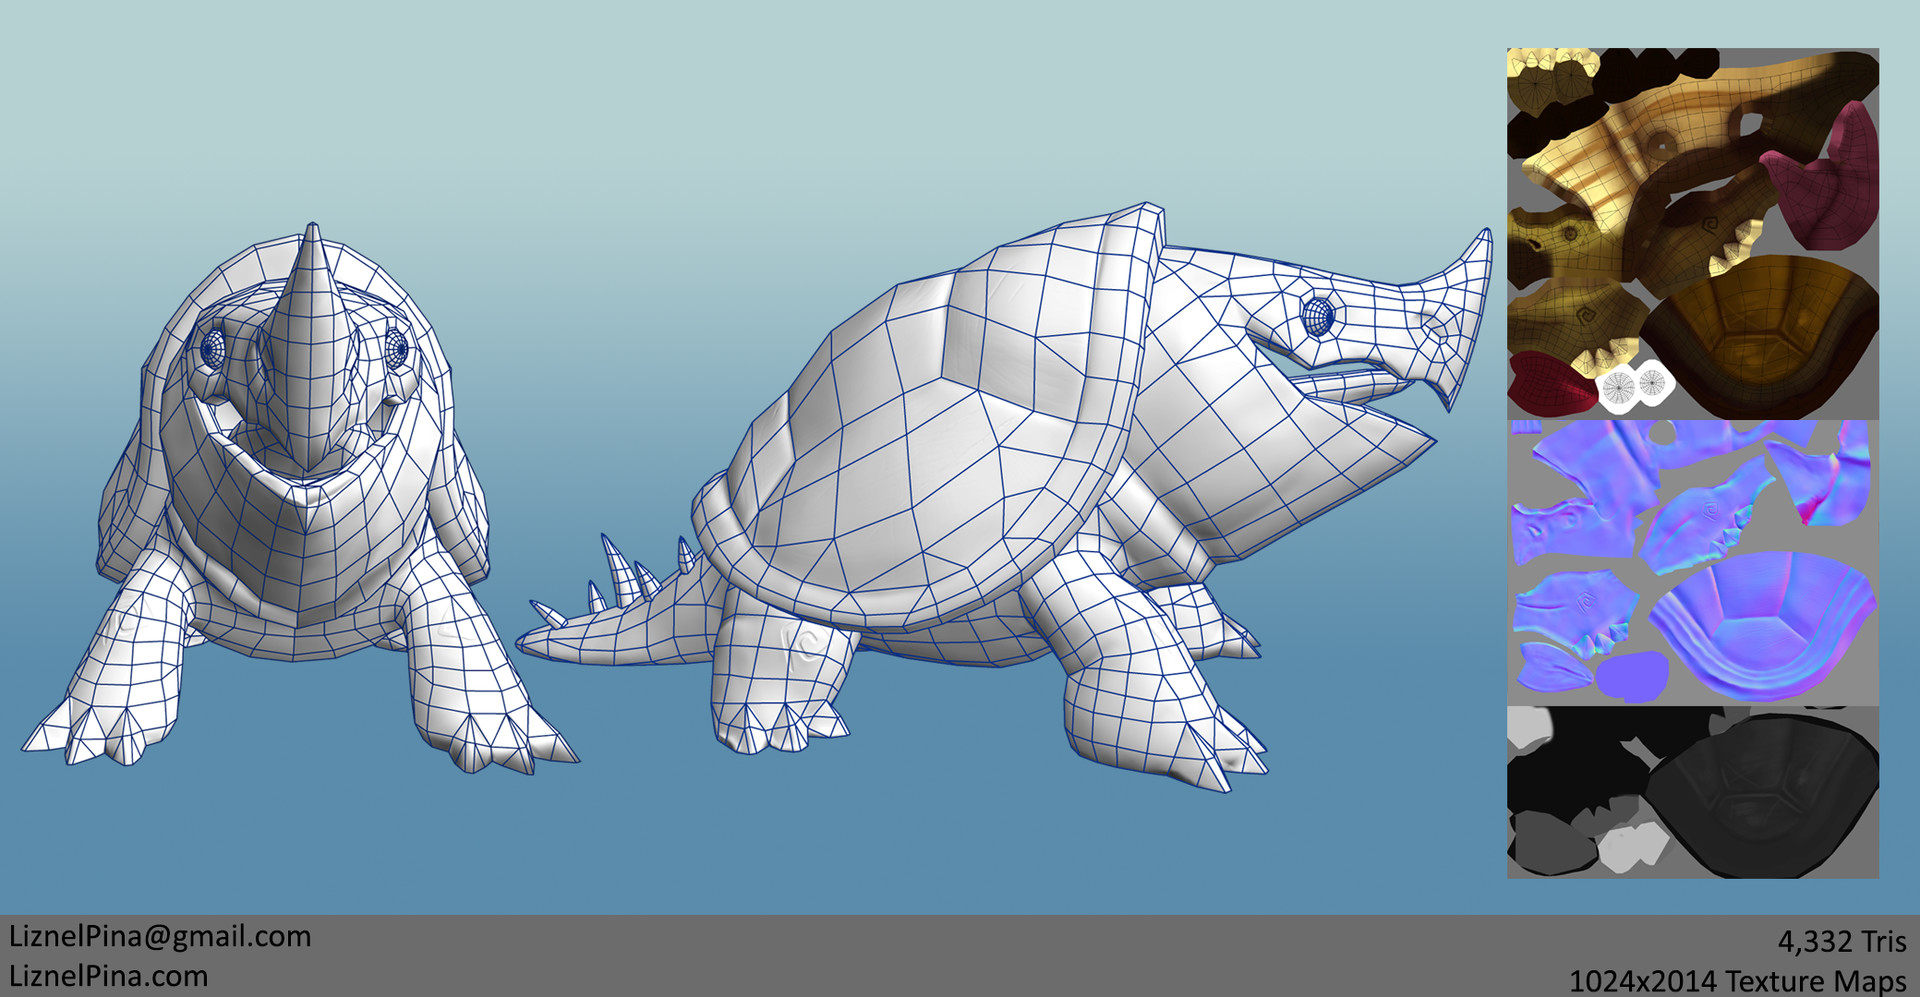 Liznel pina turtle renders wireframe